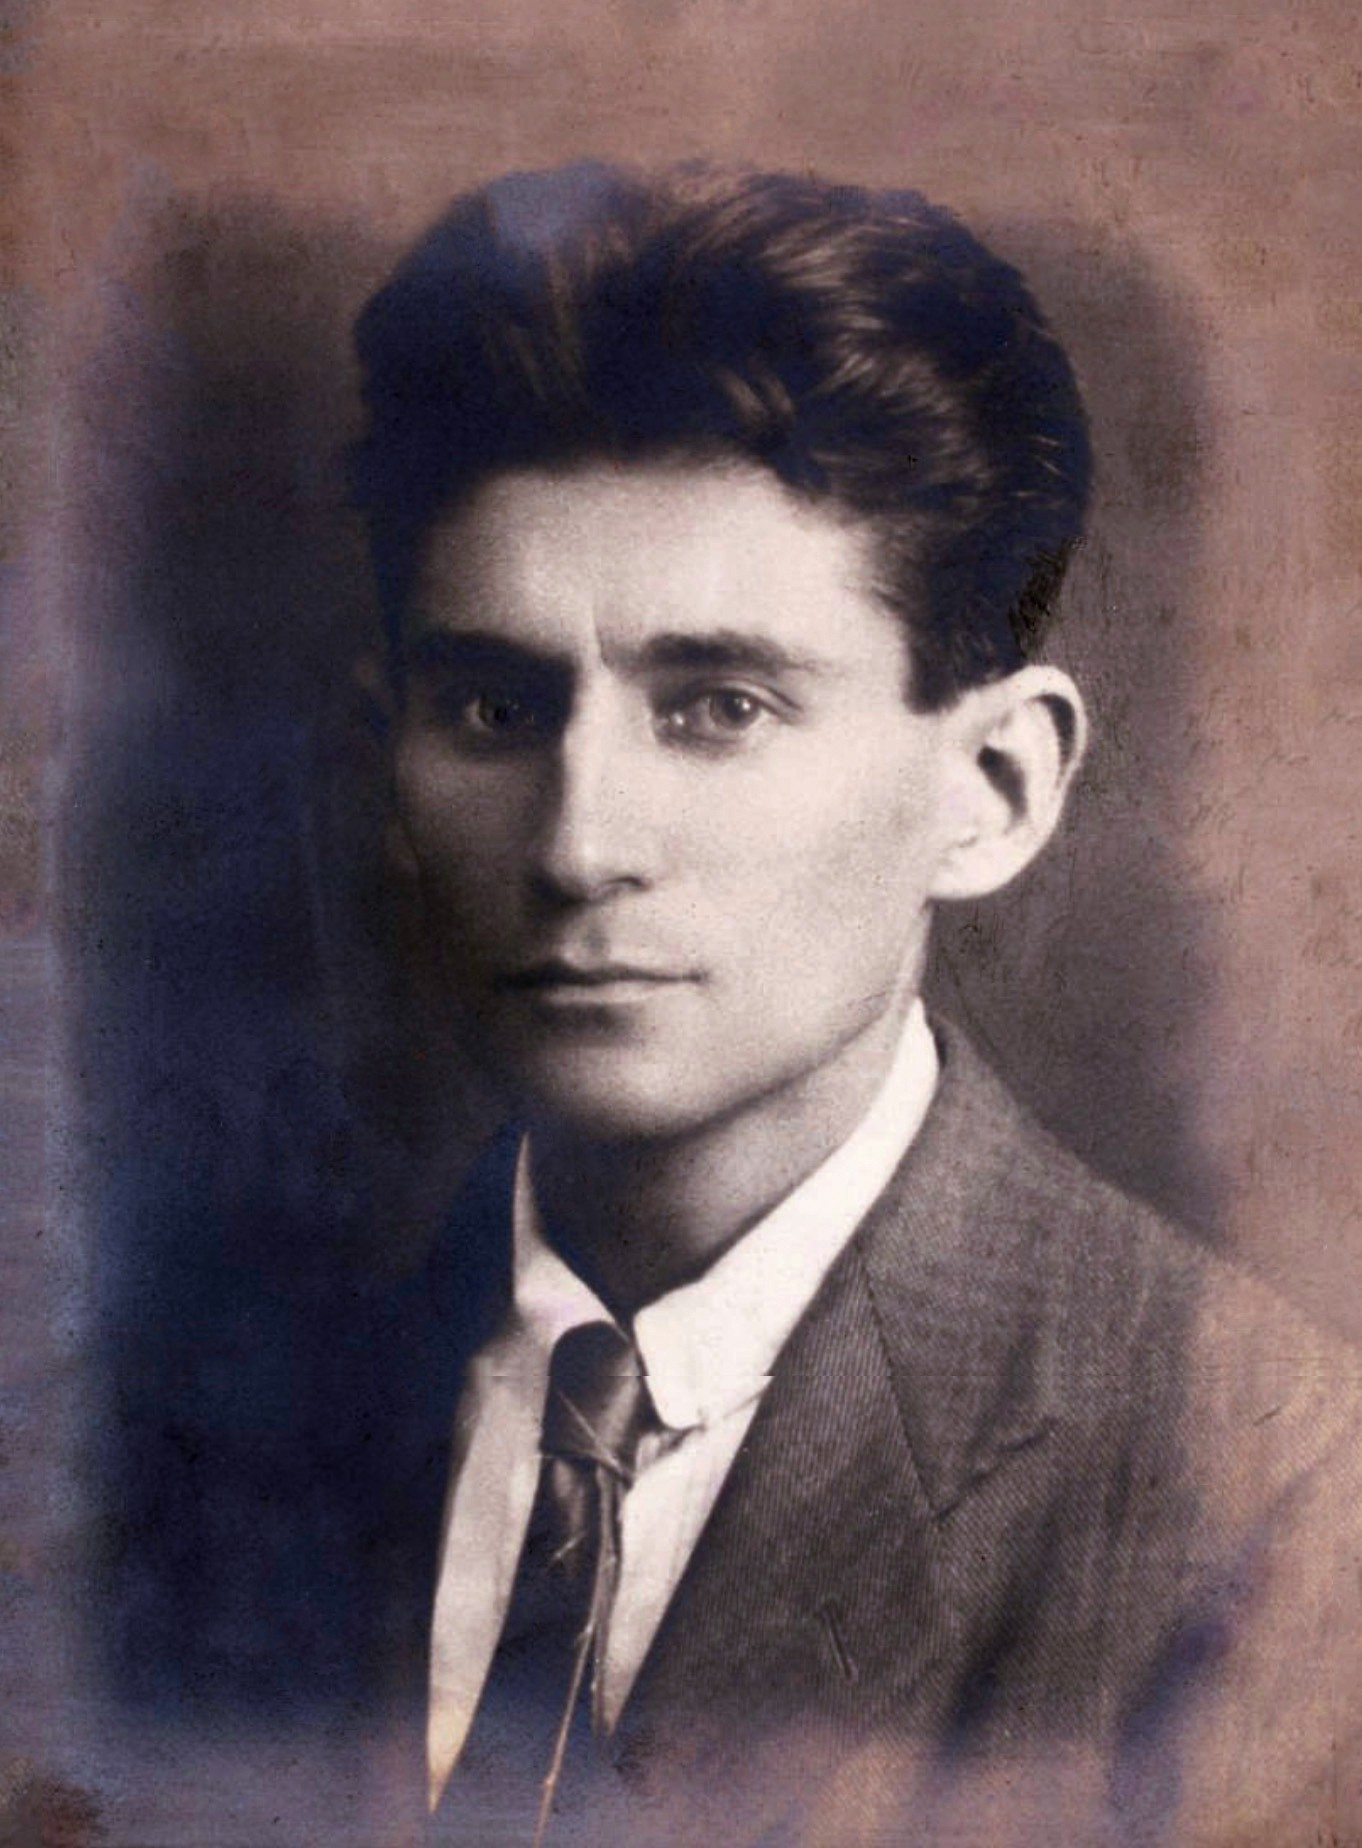 Franz Kafka em 1917 (Foto: By unattributed (Christie's) [Public domain], via Wikimedia Commons)